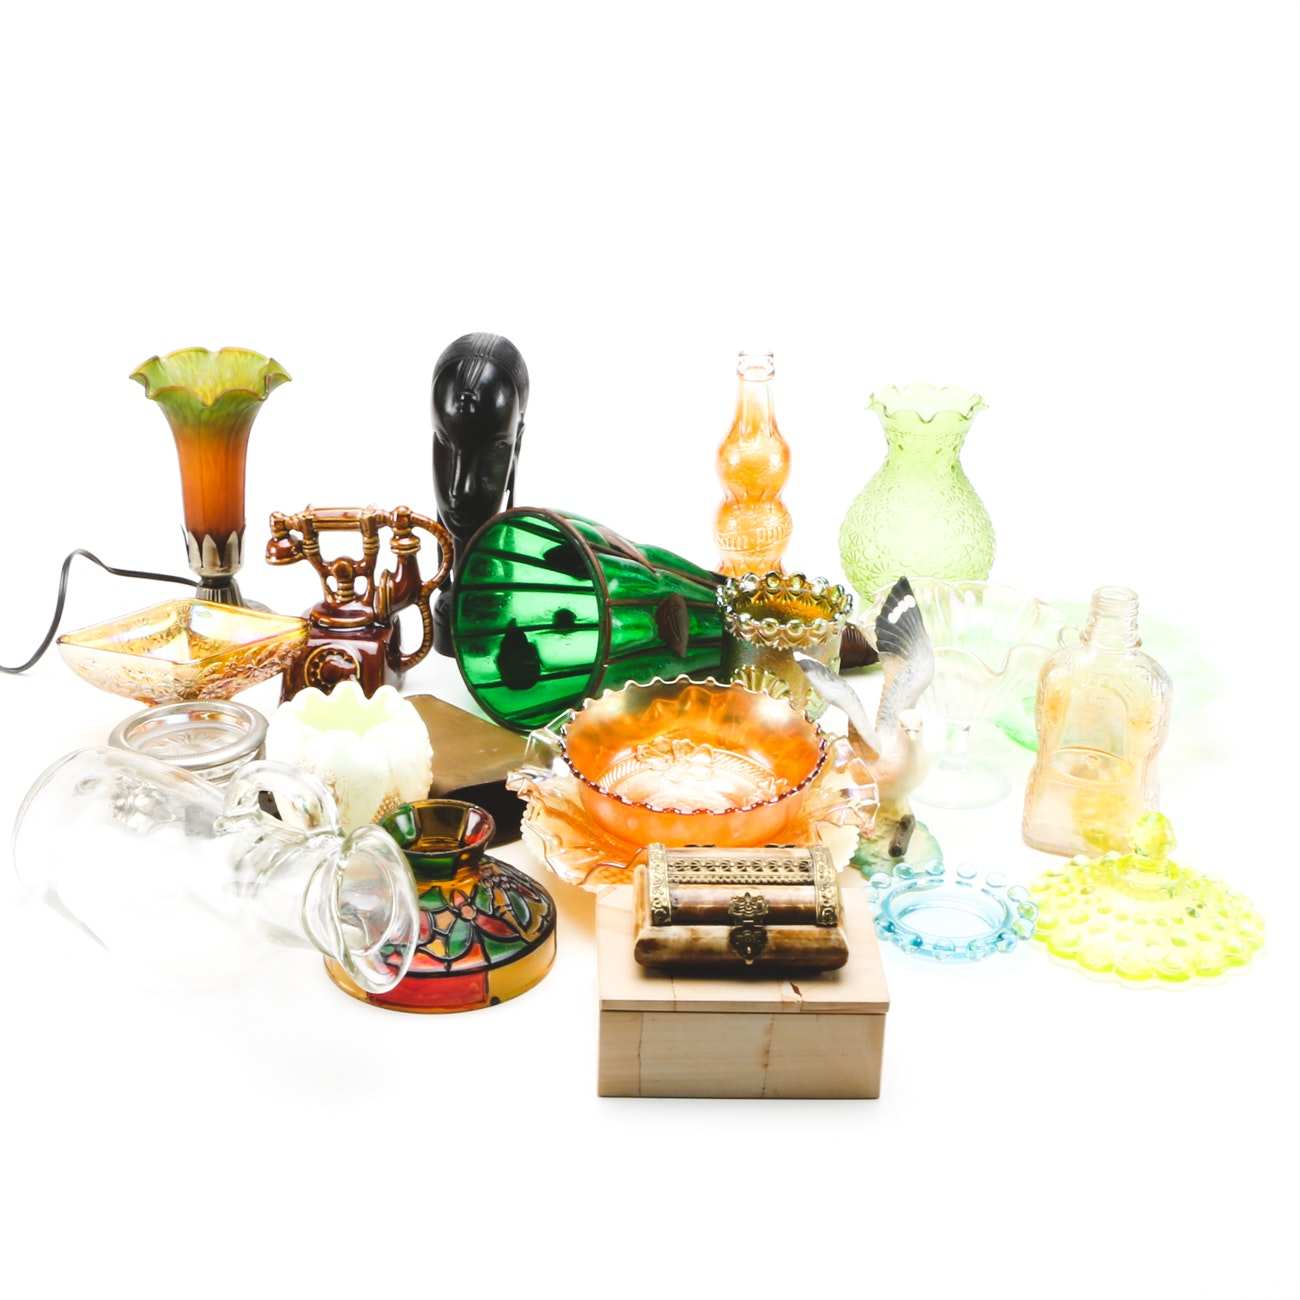 Assorted Mid-Century and Contemporary Art Glass and Pottery